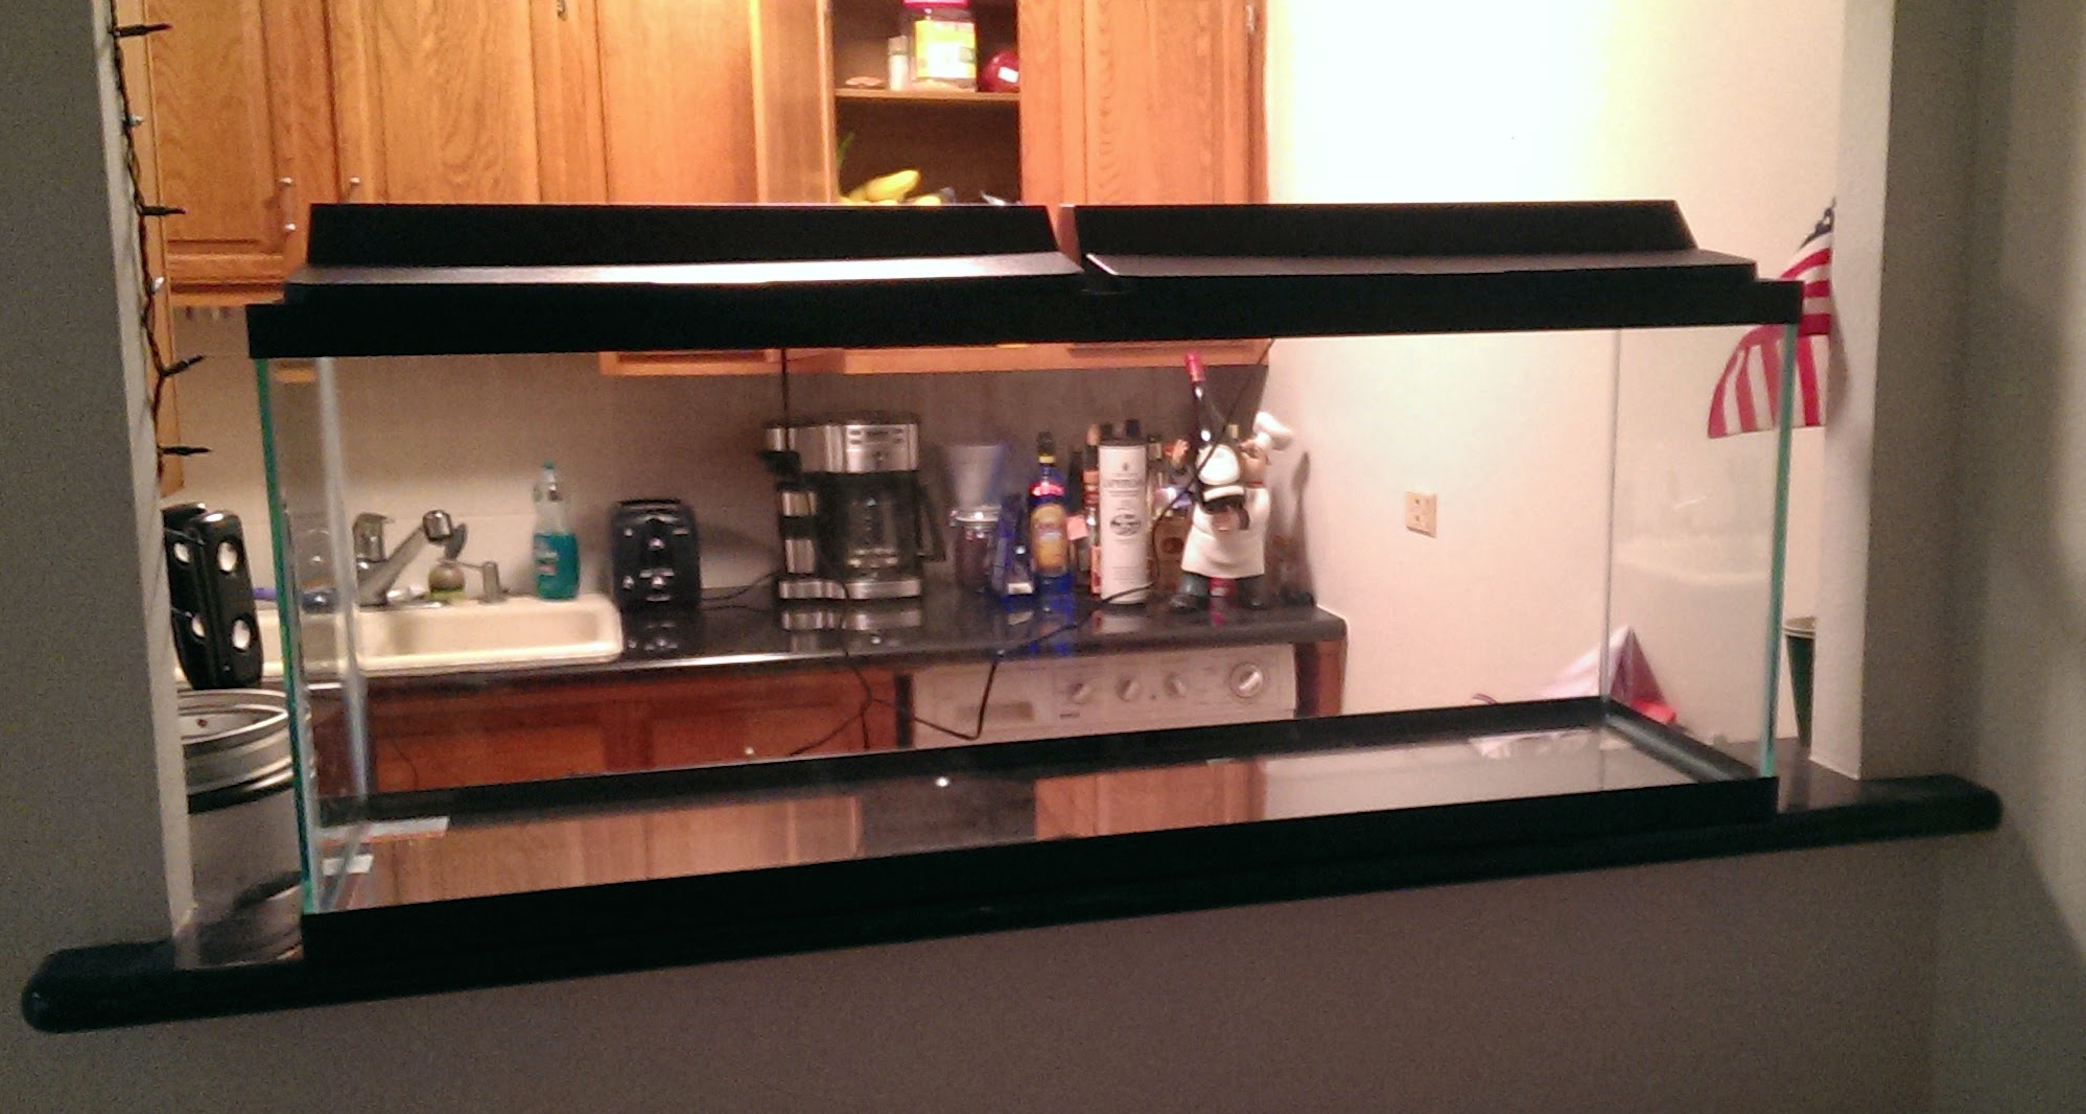 Fish tank in kitchen - Fish Tank Ledge